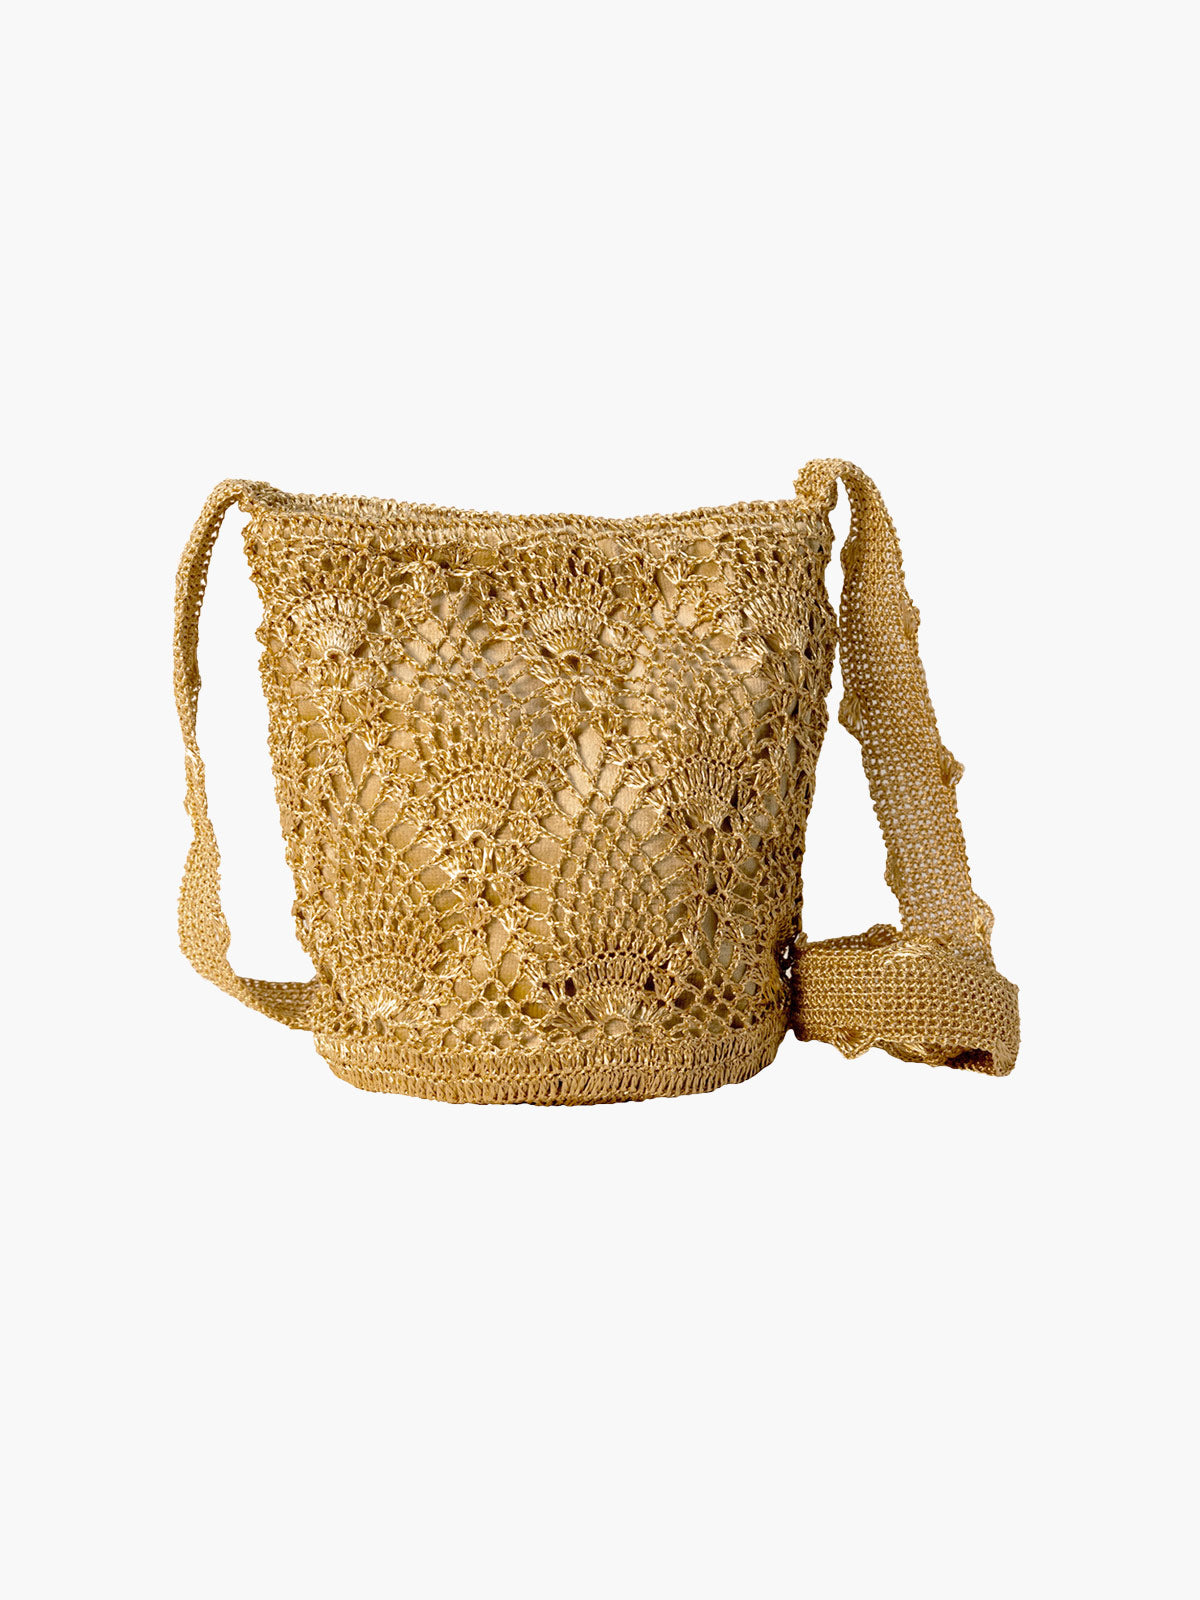 Pineapple Weave Mochila | Gold & Beige